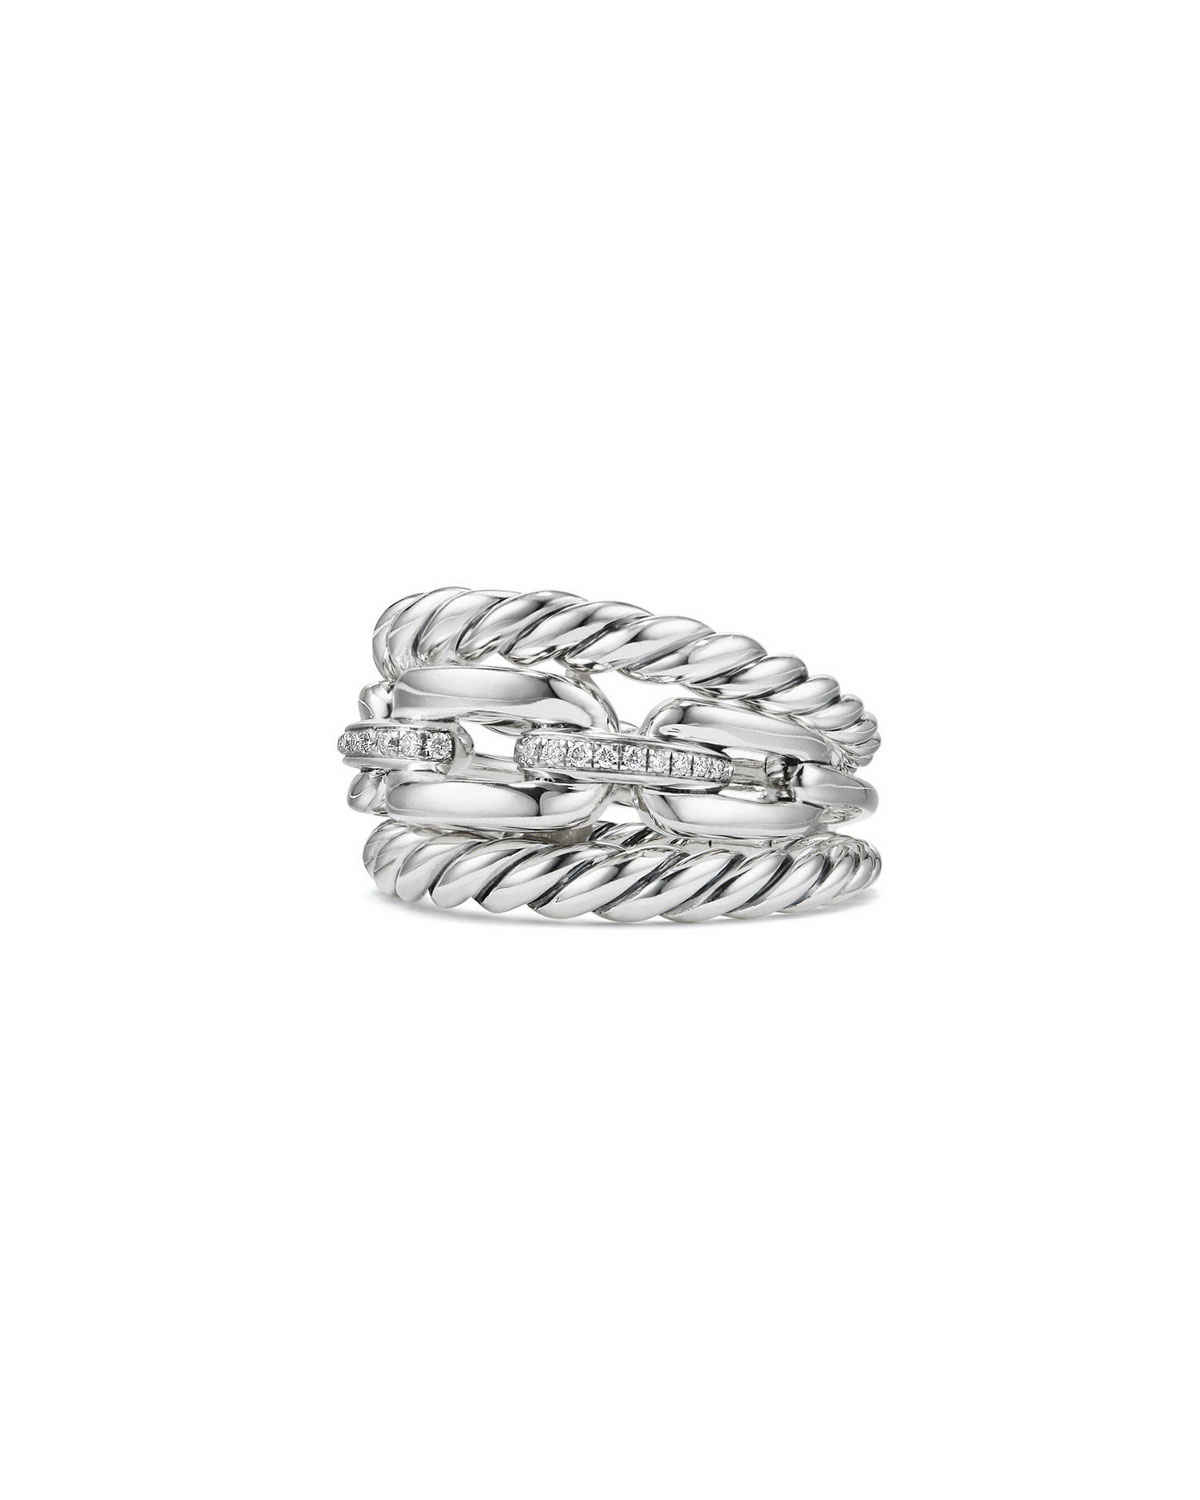 Wellesley Sterling Silver Three-Row Ring with Diamonds